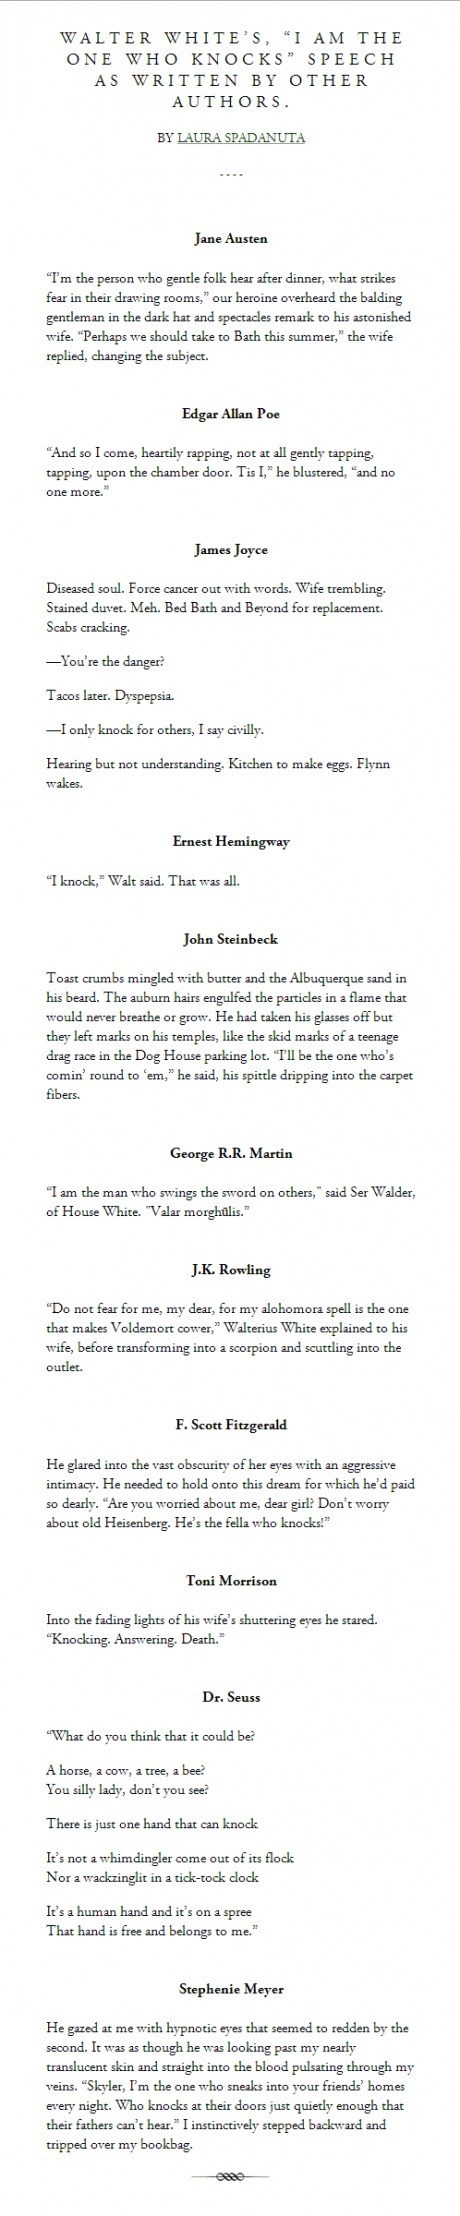 breaking bad authors spoof